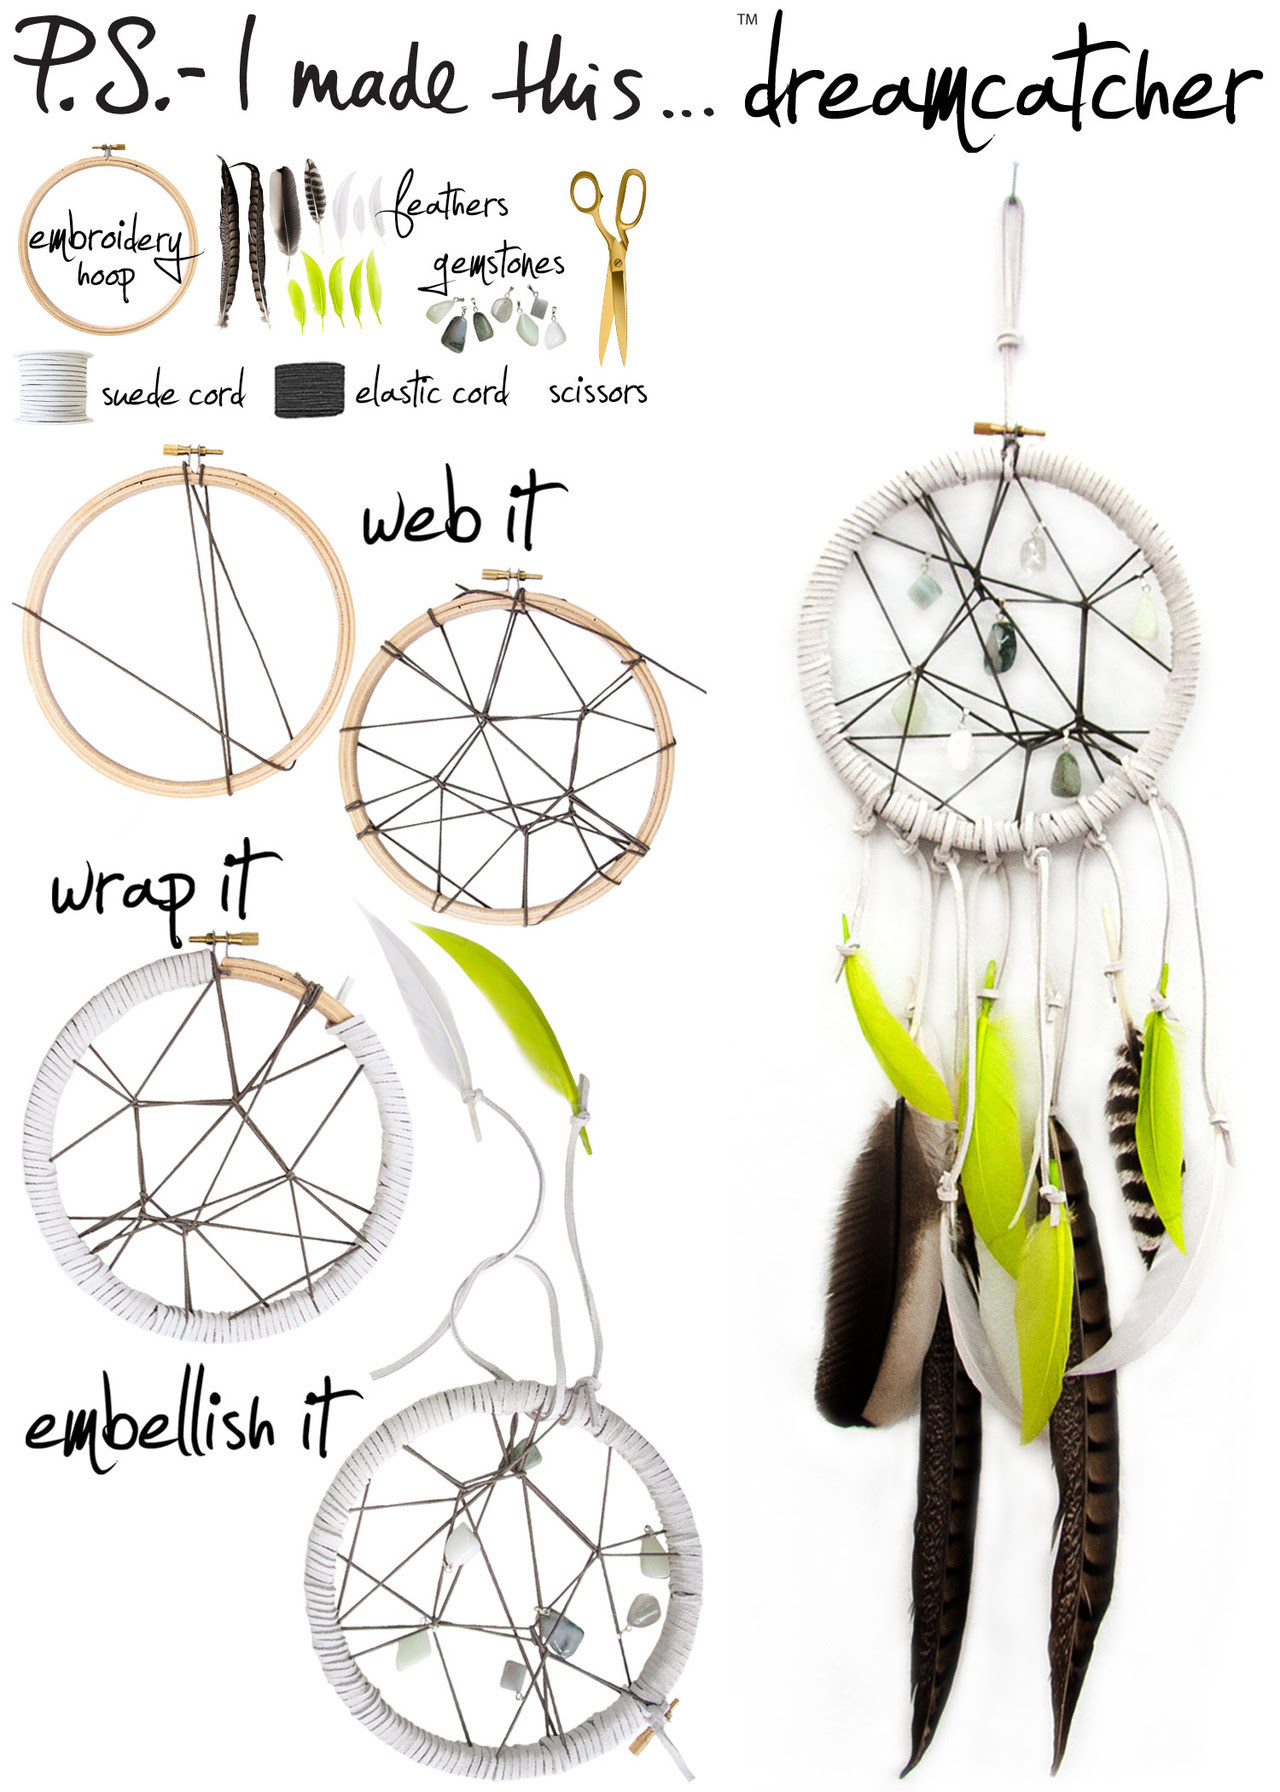 Follow your DIY dreams and add an eclectic inspiring touch to any room. Originating from Native American culture, dreamcatchers are said to filter out bad dreams and allow the good ones to float through. A geometric weave, bright feathers and the elegant touch of colorful stone accouterments combine to create a covetable object that's trendy yet timeless.  To create:  Web the elastic cord around the embroidery hoop - get inspired by structured spider webs or intertwine your own unique organic shape. Secure the web and wrap the frame of the embroidery hoop with suede cord. Embellish the web with gemstones or beads. Finish off by tying scrap suede cord in a variety of lengths to the bottom of the hoop and dangle an assortment of feathers.